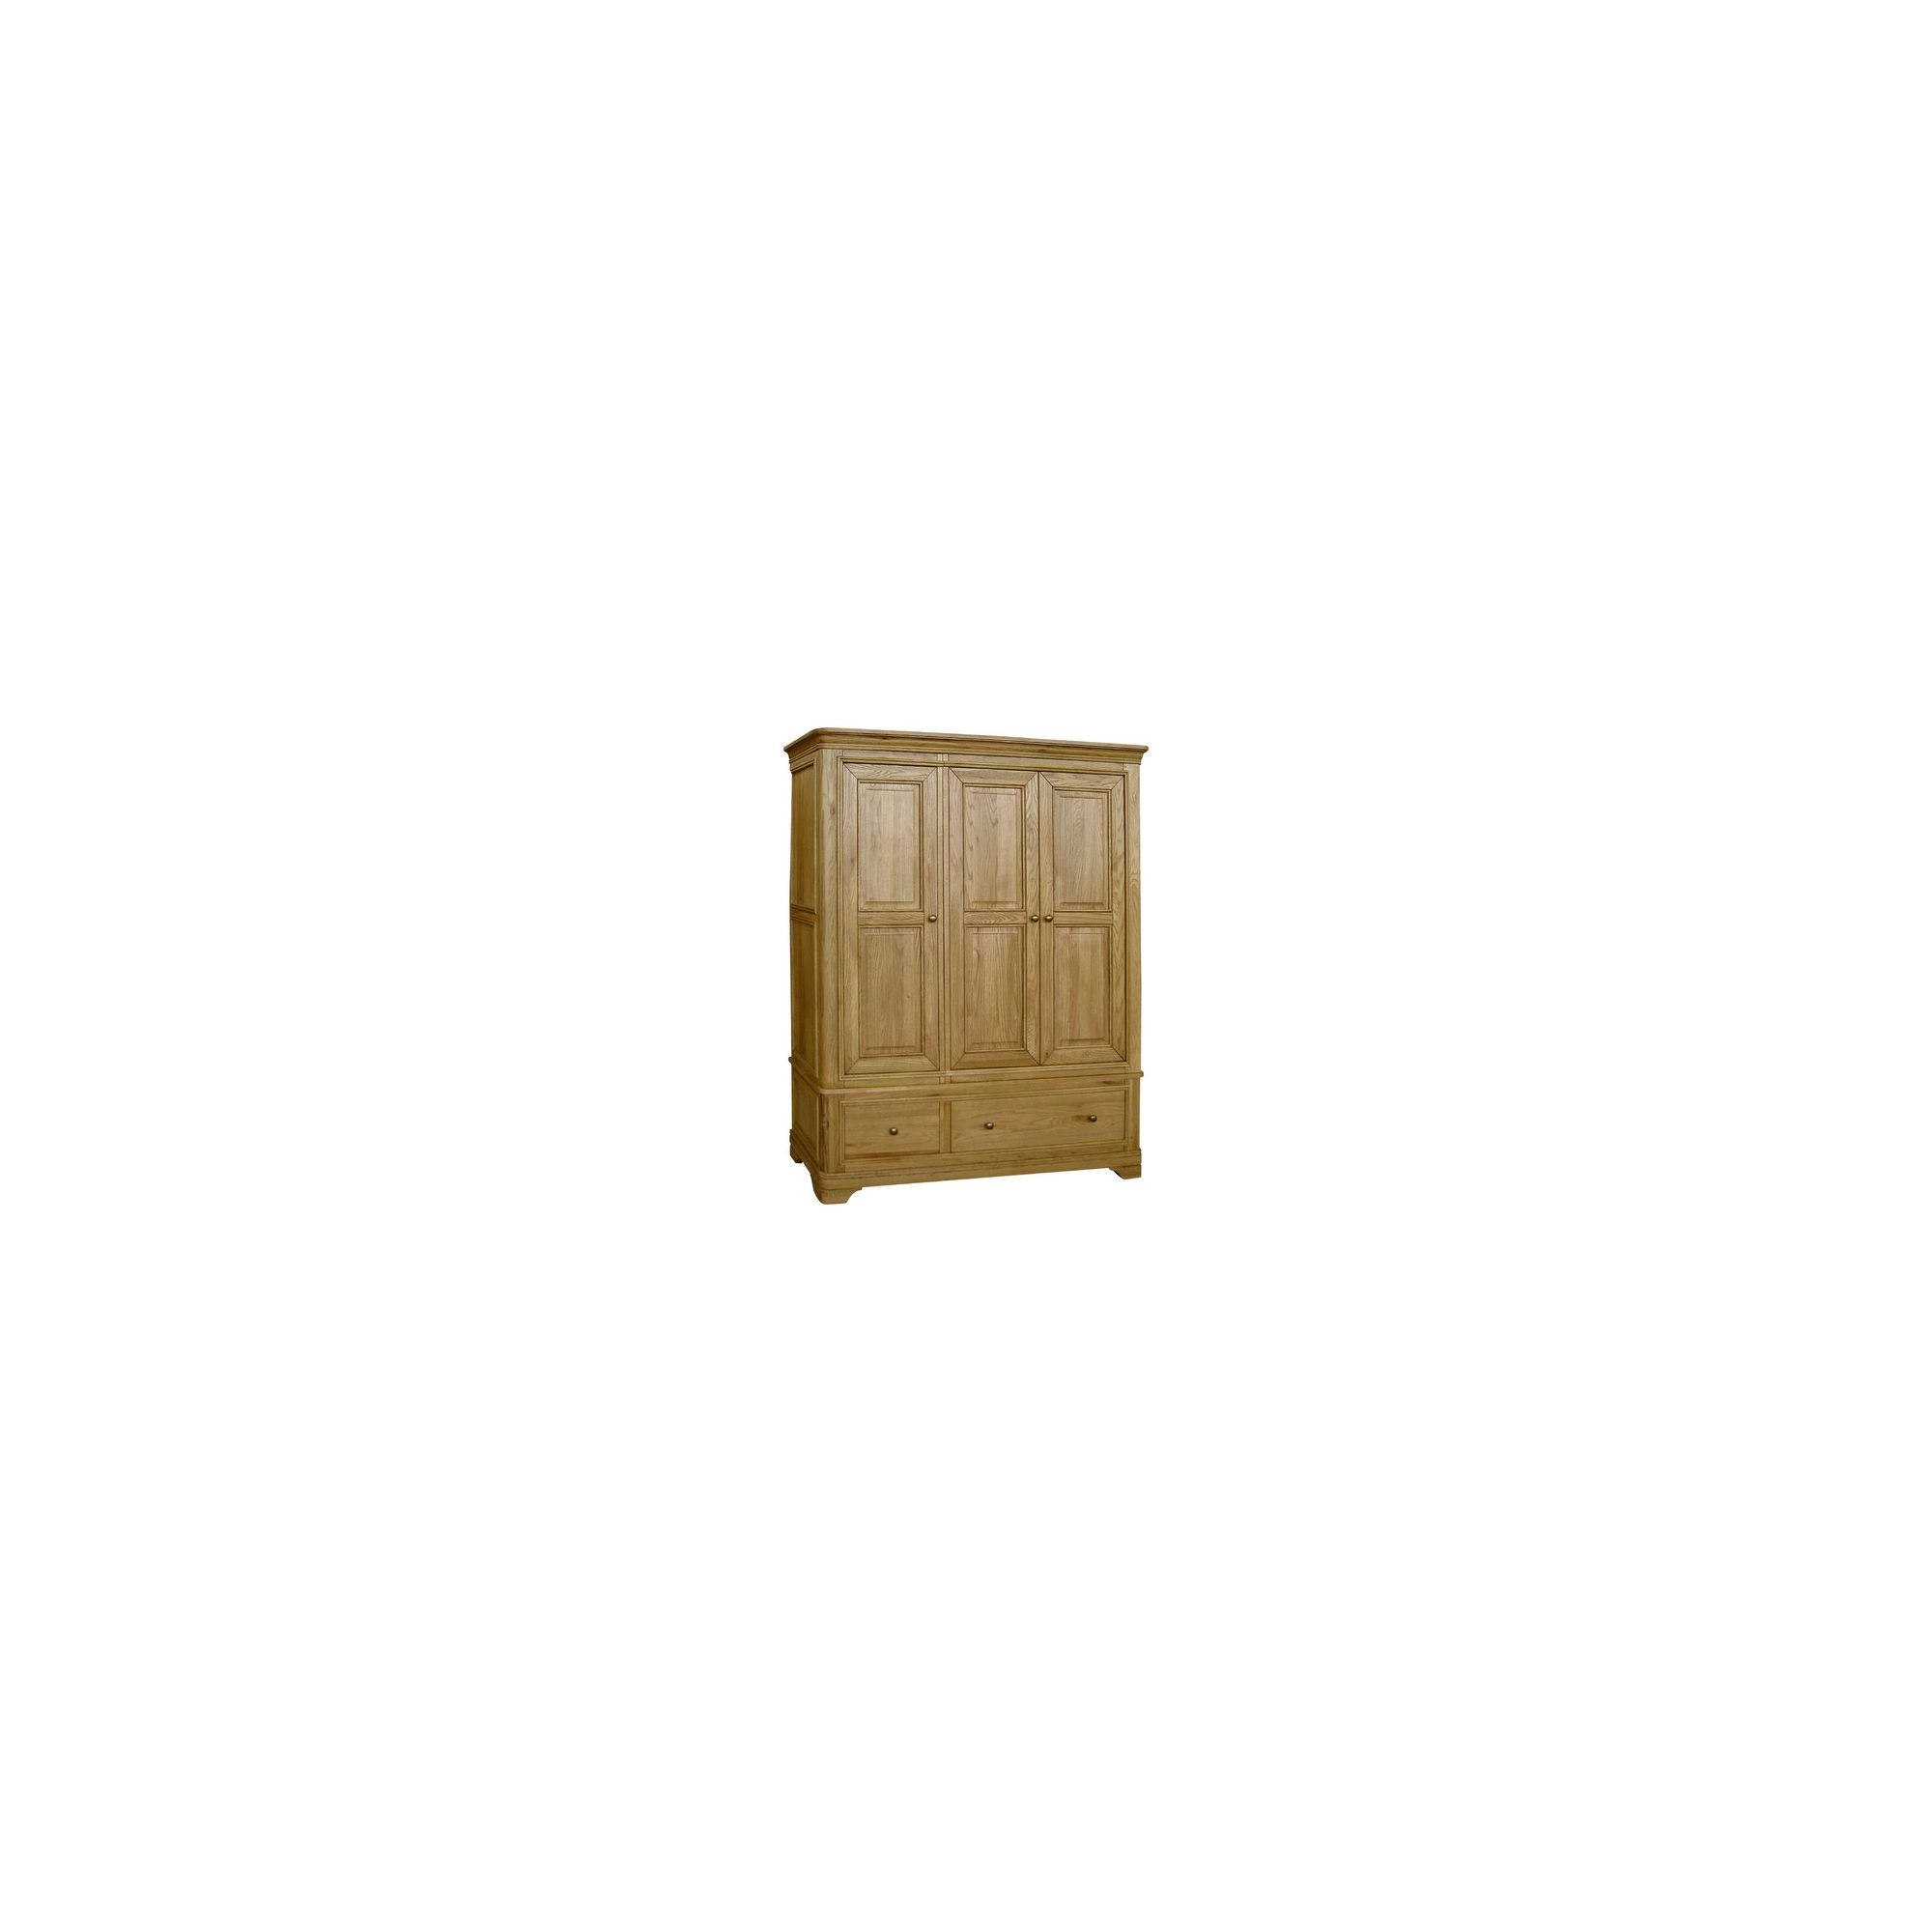 Kelburn Furniture Loire Triple Wardrobe in Light Oak Stain and Satin Lacquer at Tesco Direct